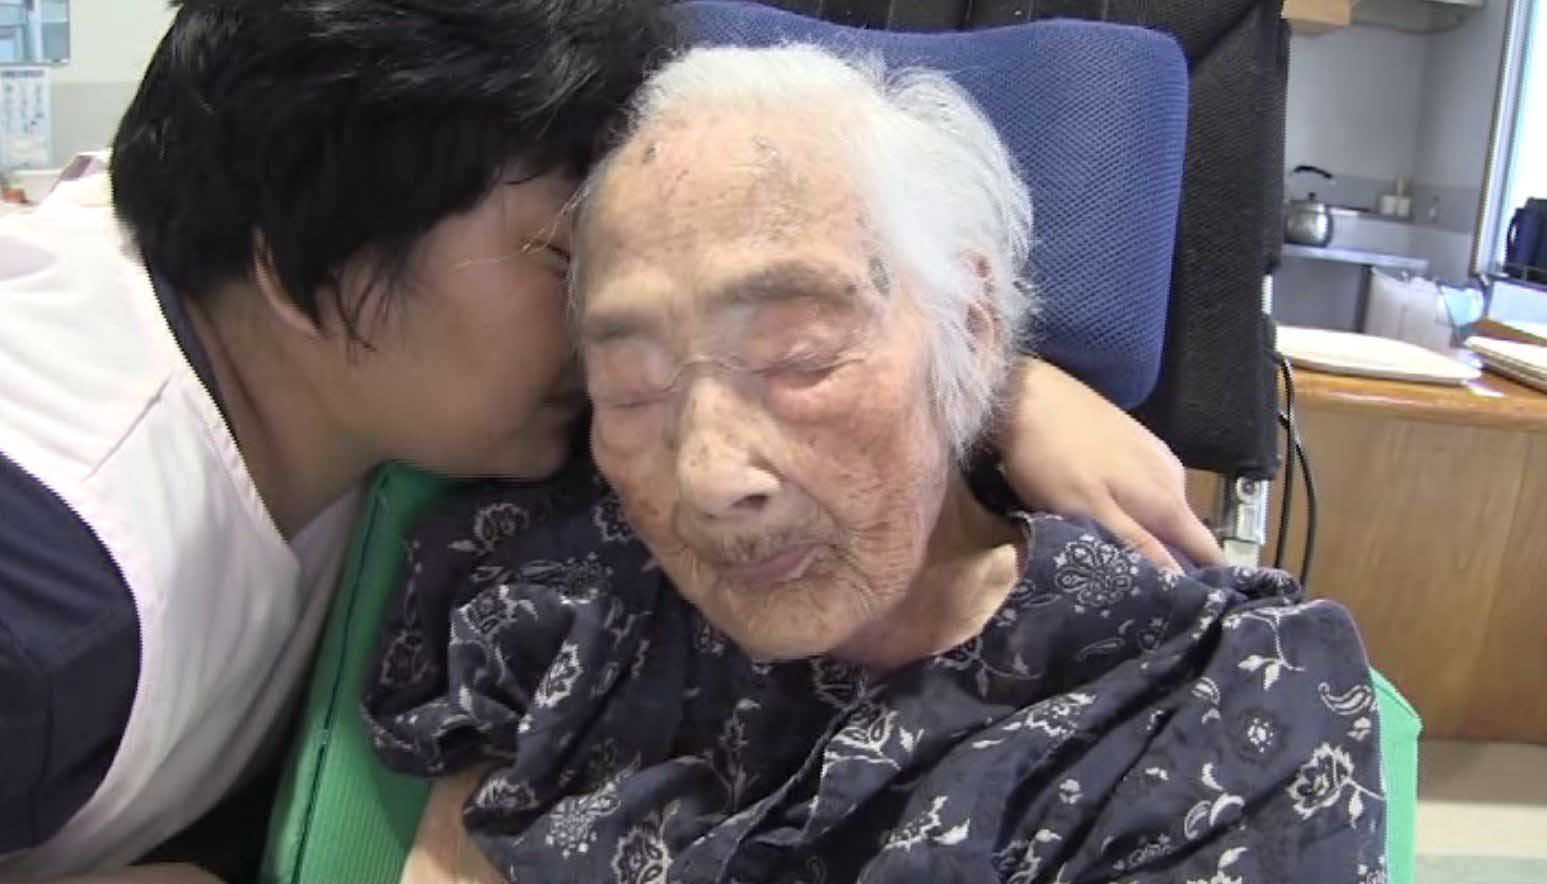 Nabi Tajima died of old age in a hospital Saturday evening in the town of Kikai in southern Japan, town official Susumu Yoshiyuki confirmed. (Source: TV Asahi/CNN)